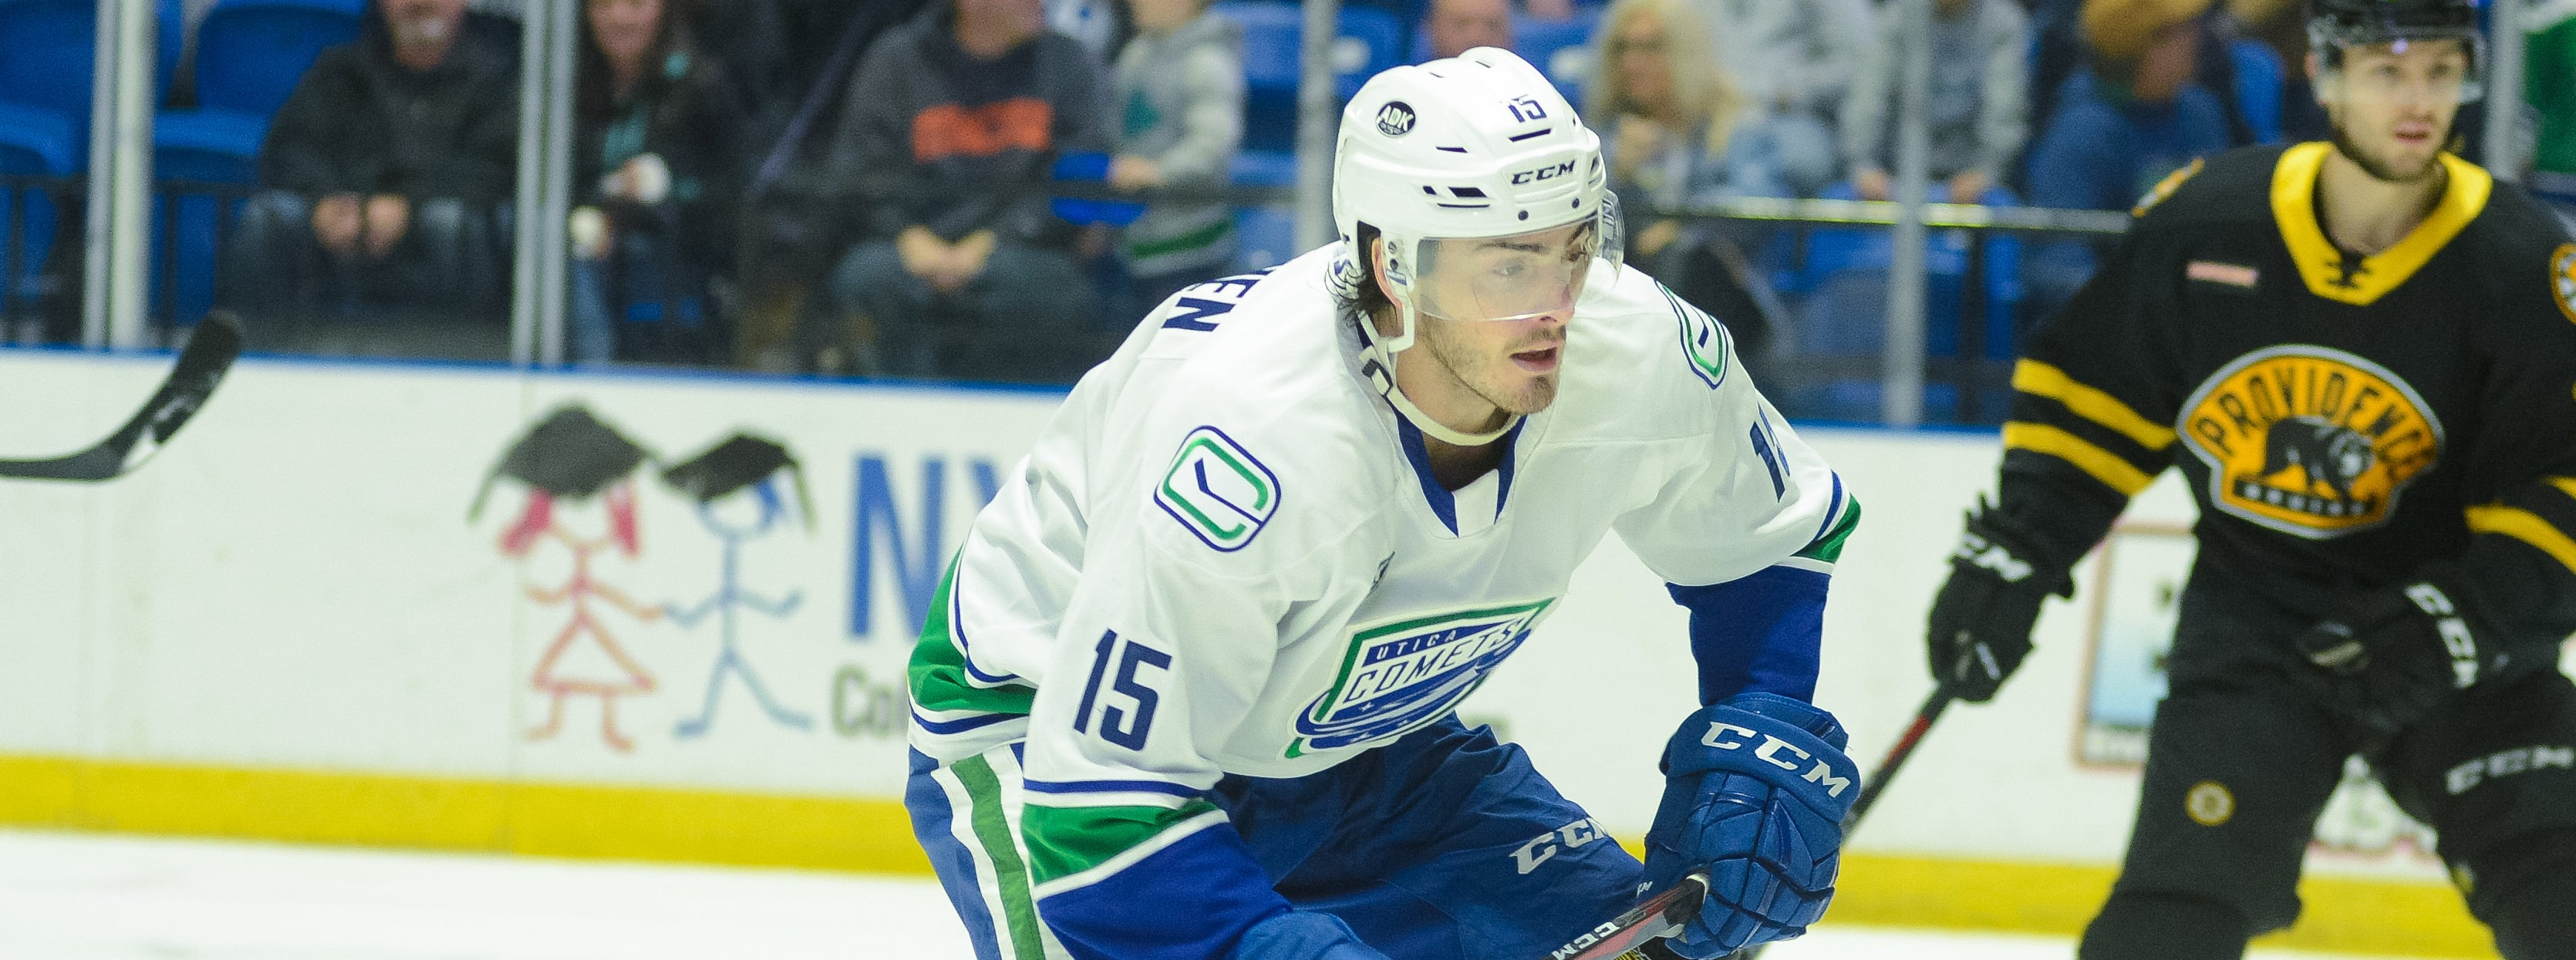 COMETS STREAK HALTED BY BRUINS SHUTOUT